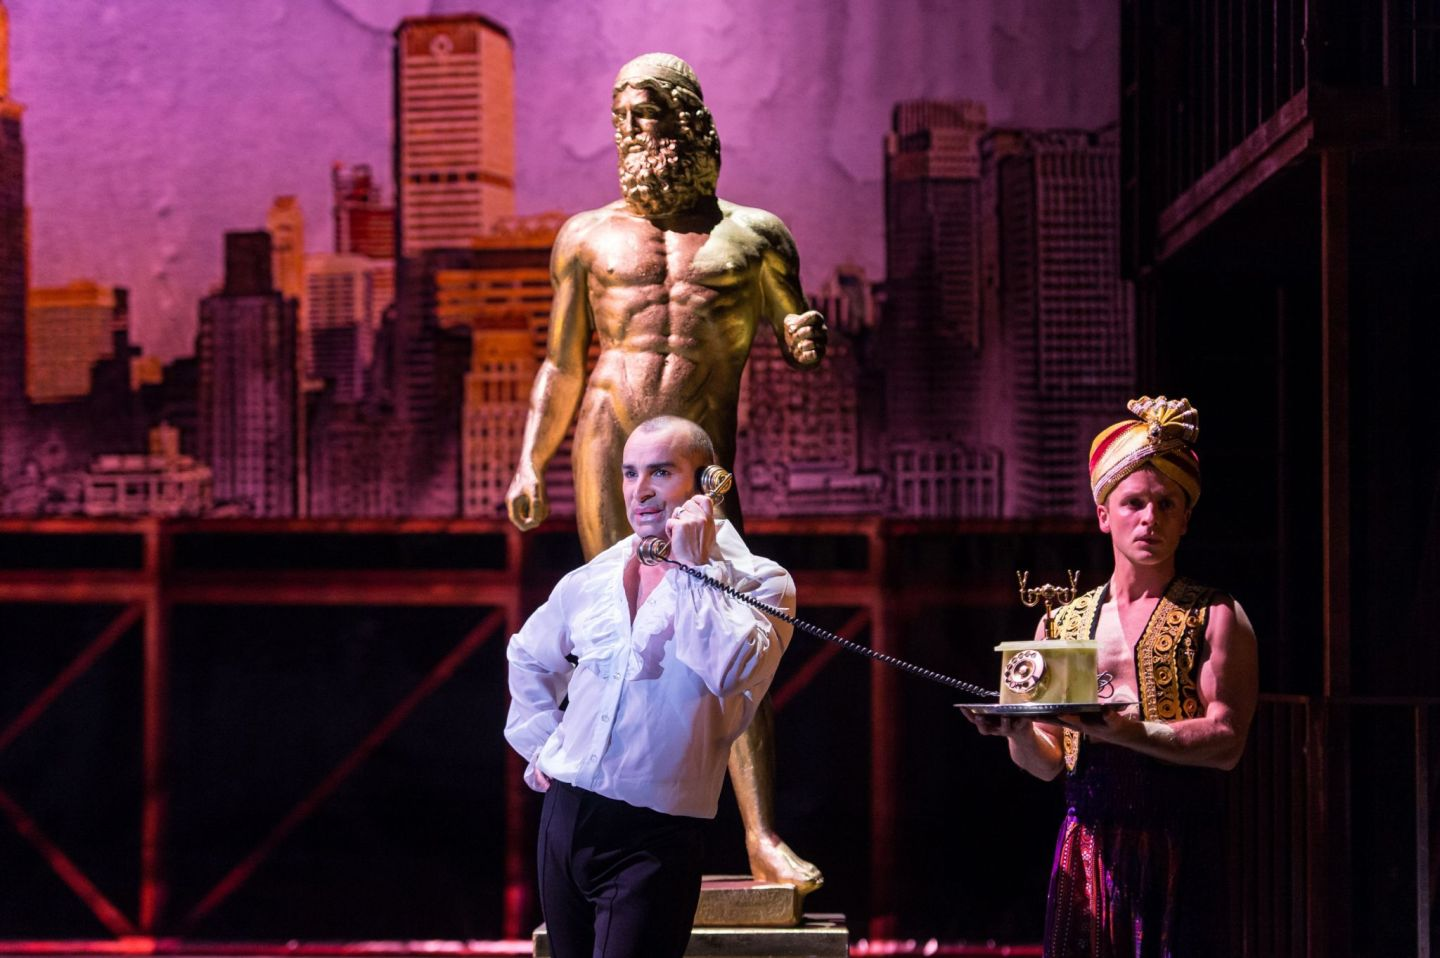 Louie Spence in  The Producers, production image supplied and under copyright.